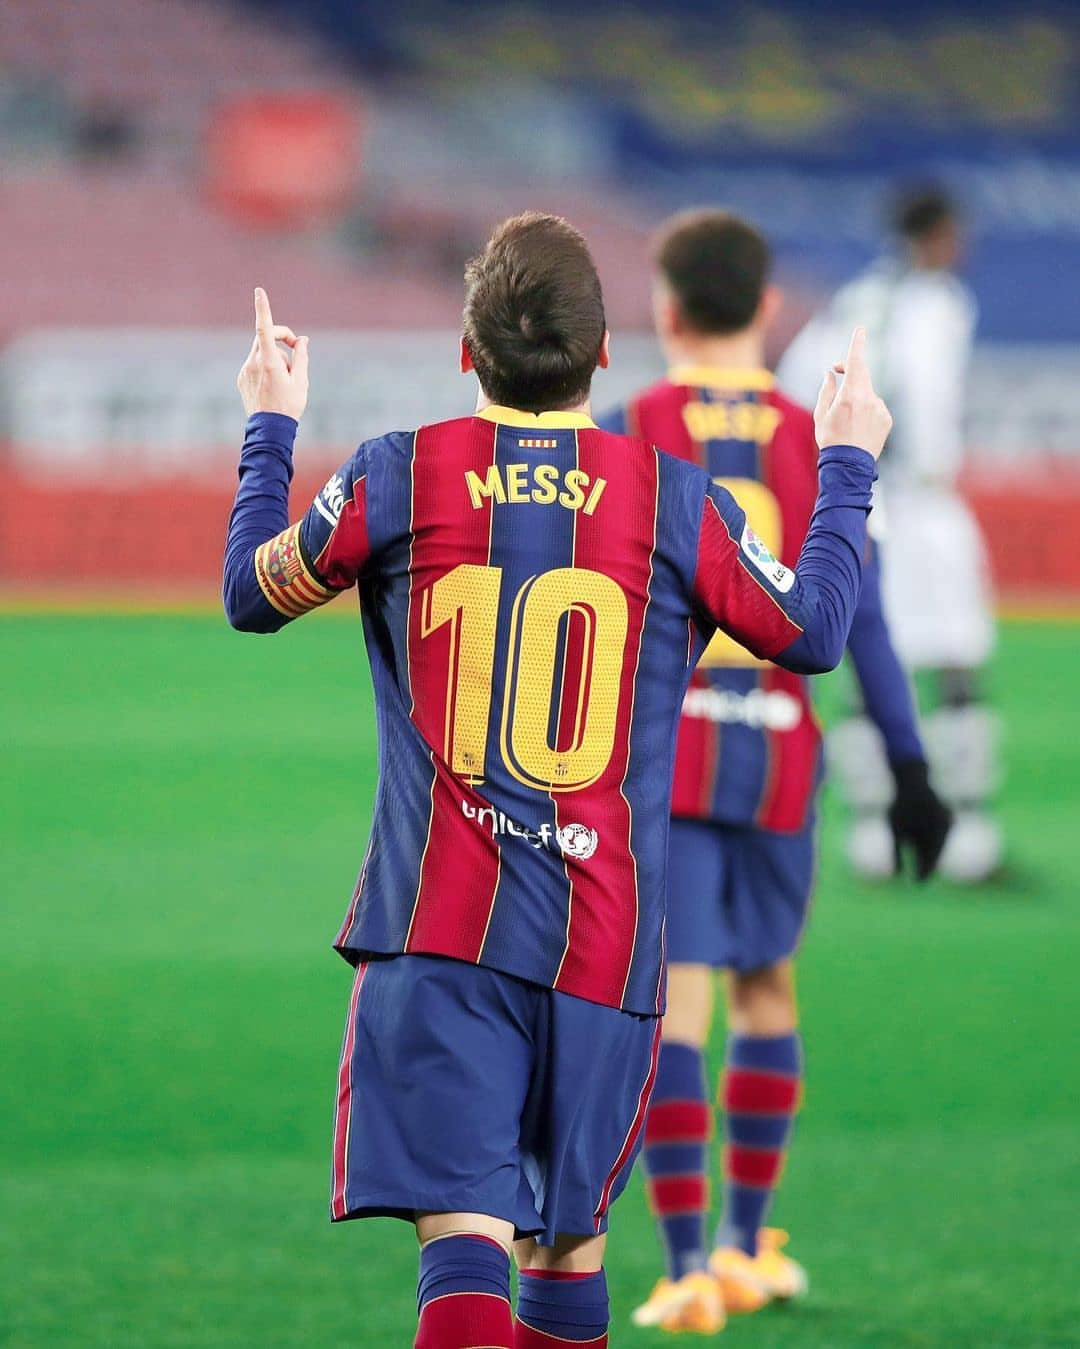 Lionel Messi equals Pele's one-club goal tally as he hits 643 goals with Barcelona